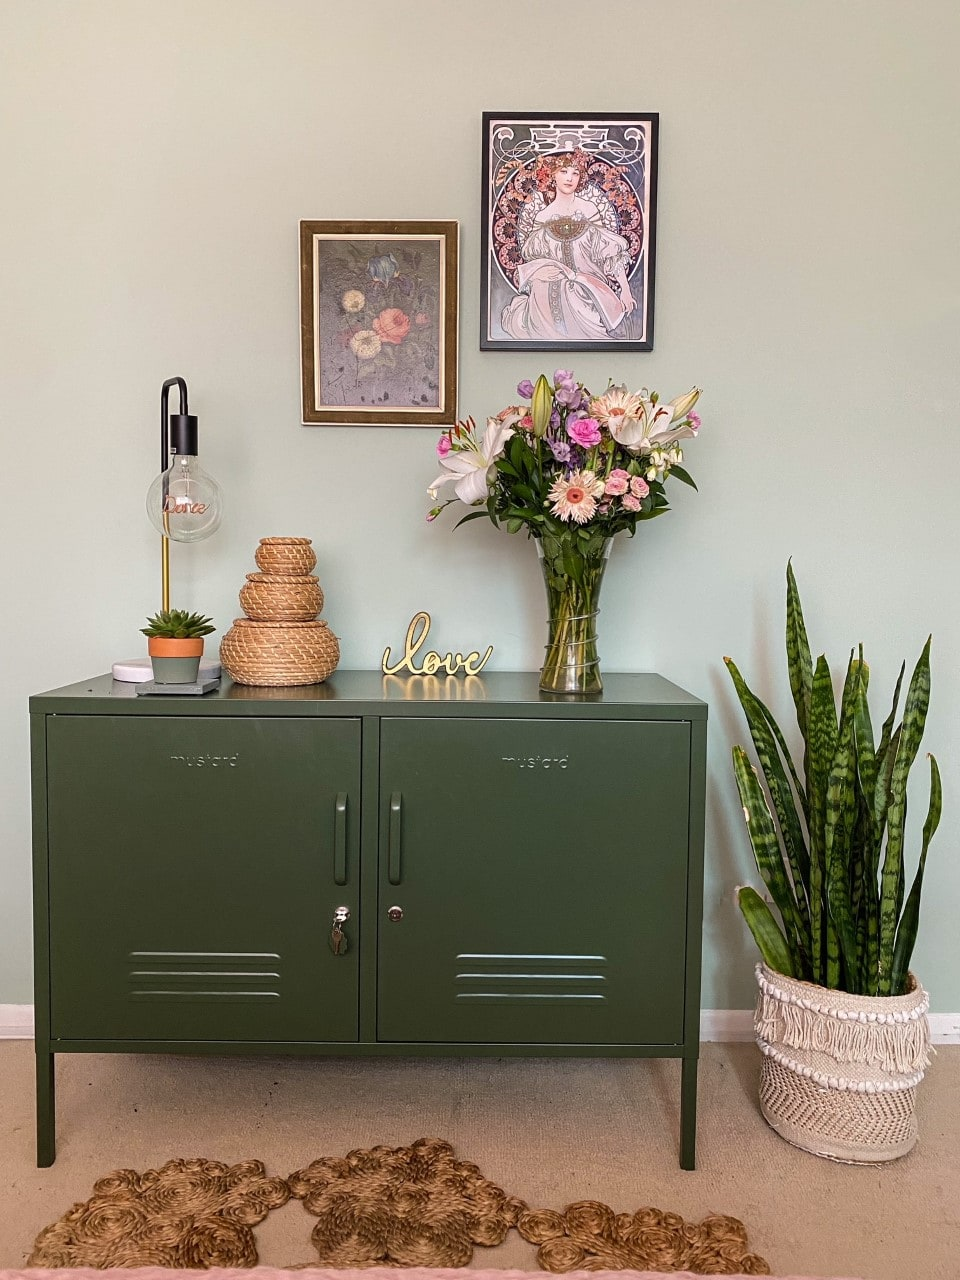 Metal Lockers – 10 Reasons Why Every Home Should Have a Fabulous Mustard Made Locker